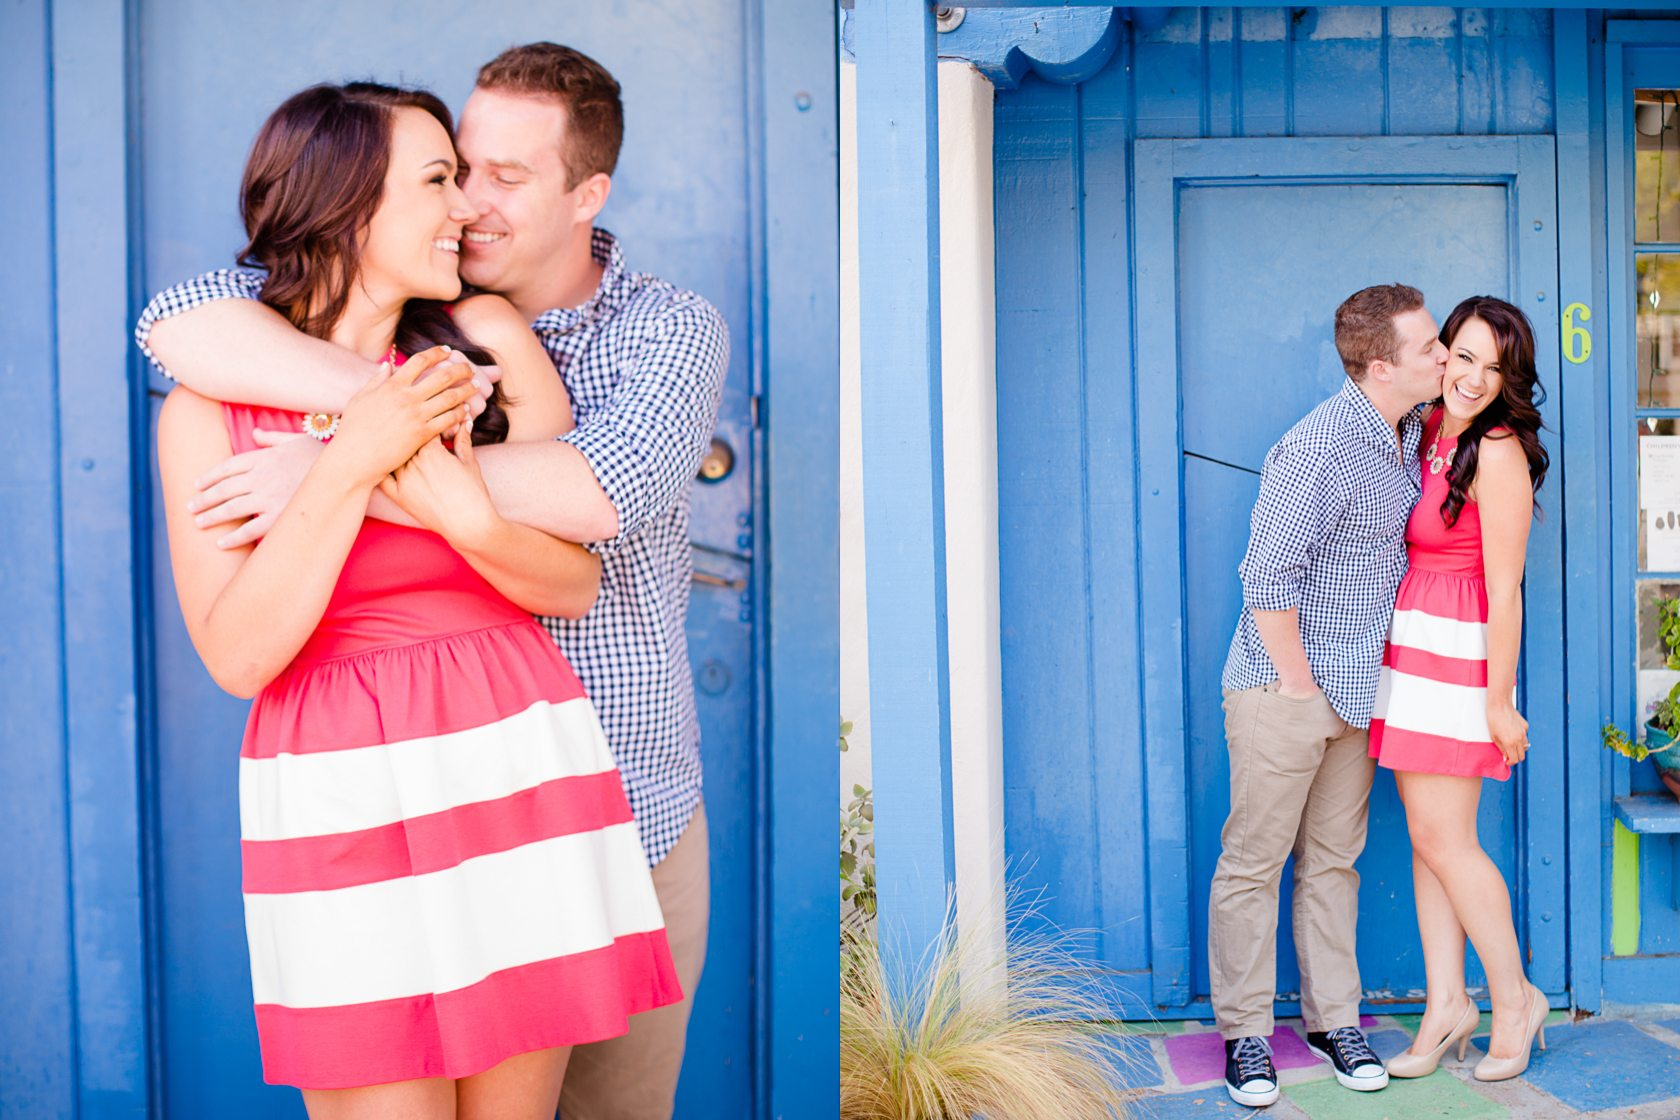 Colorful_San_Diego_Engagement_16.jpg